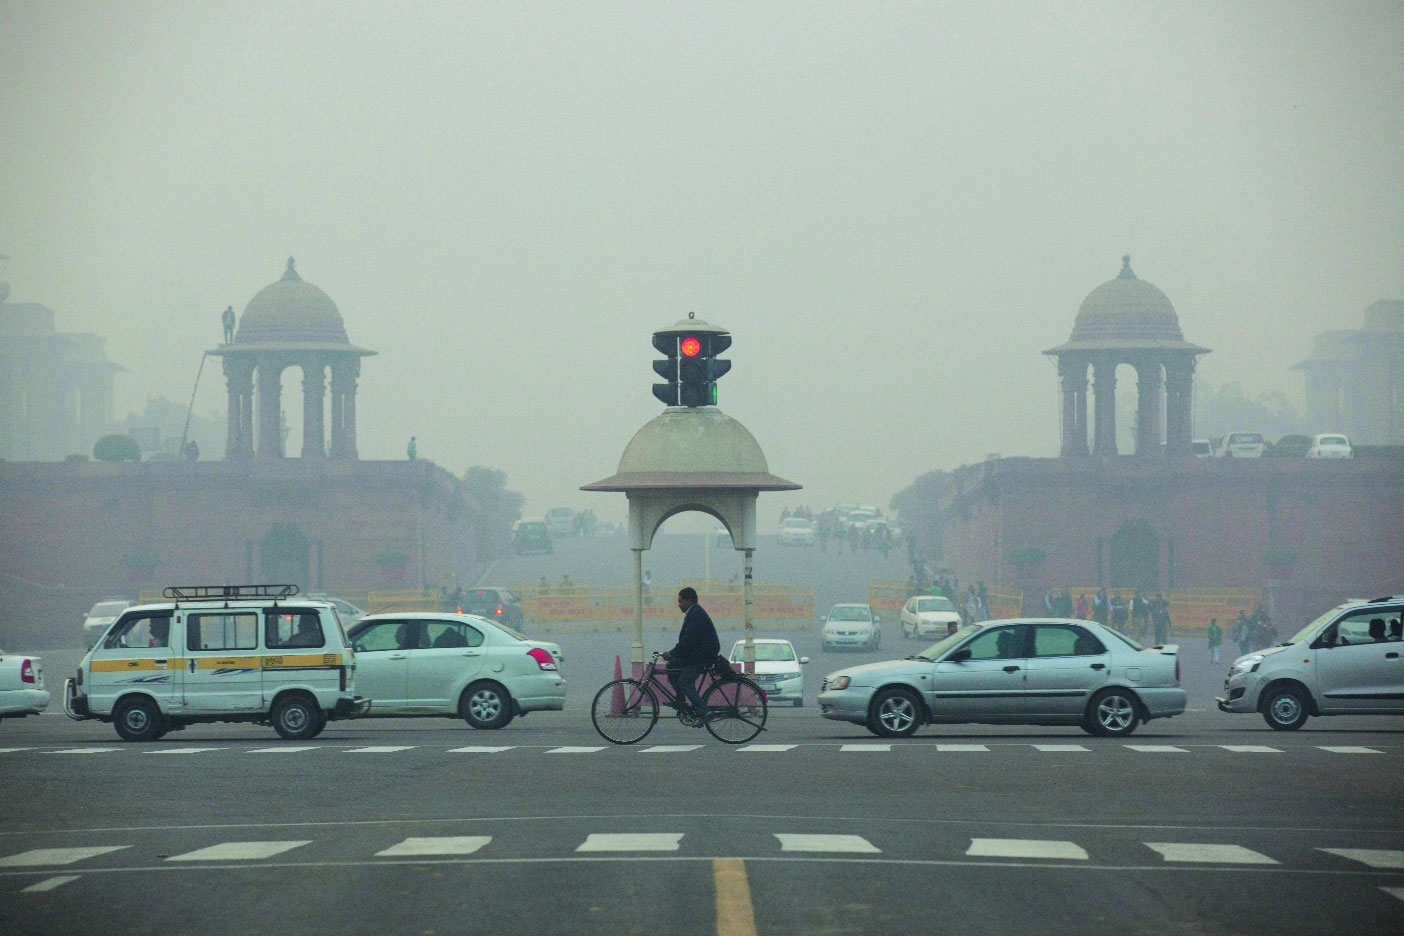 Vehiclular pollution defiles clean air in Capital